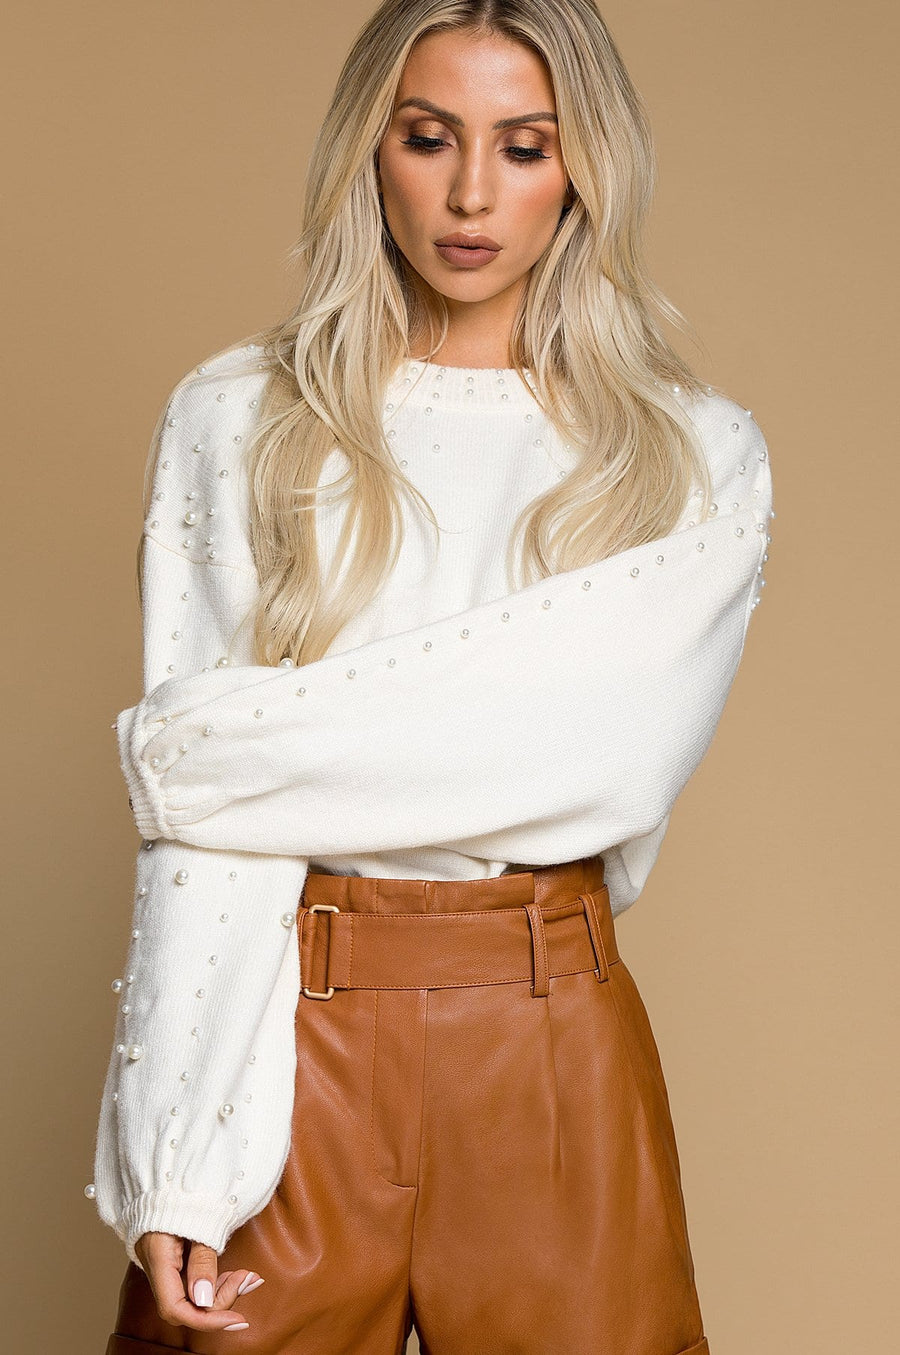 'Camille' Embellished Sweater